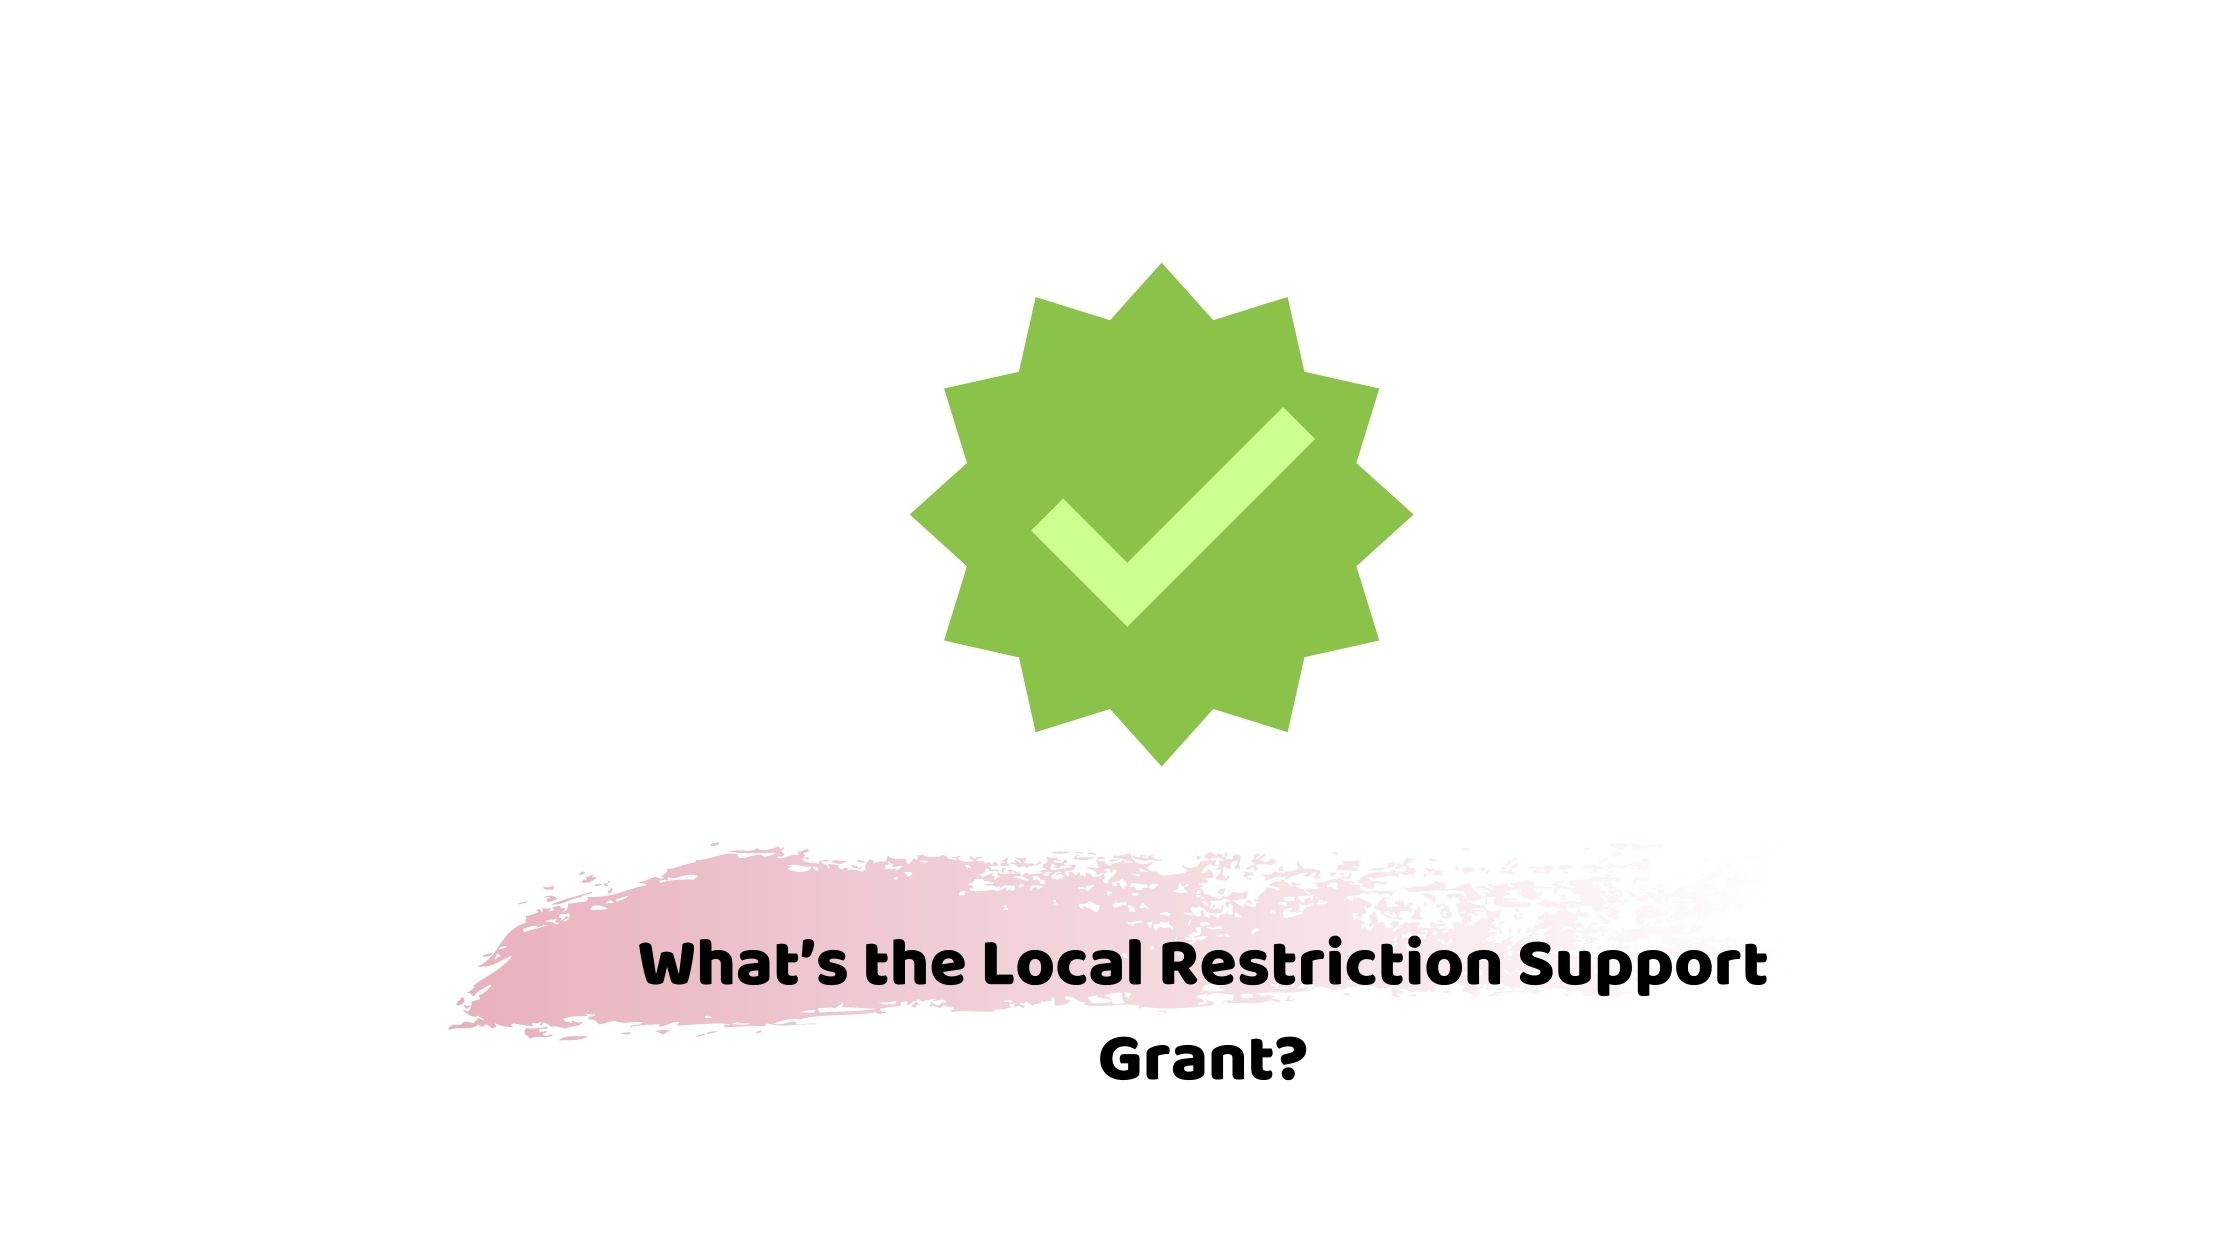 What's the local restriction support grant?